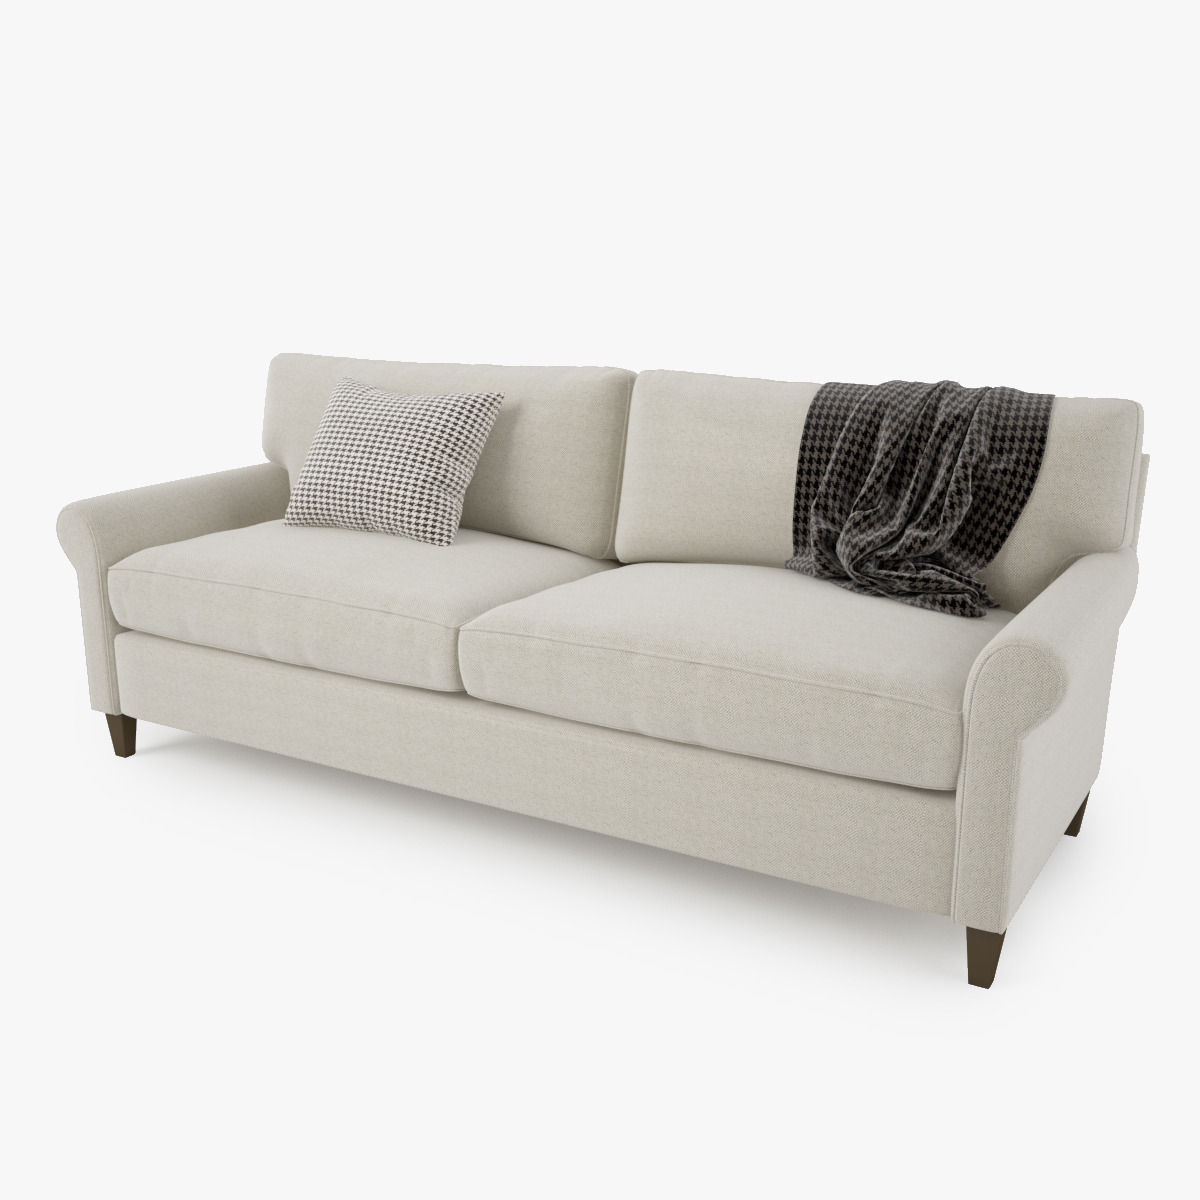 Petrie Couch Crate and Barrel | Crate and Barrel Couch | Sleeper Sofa Crate and Barrel